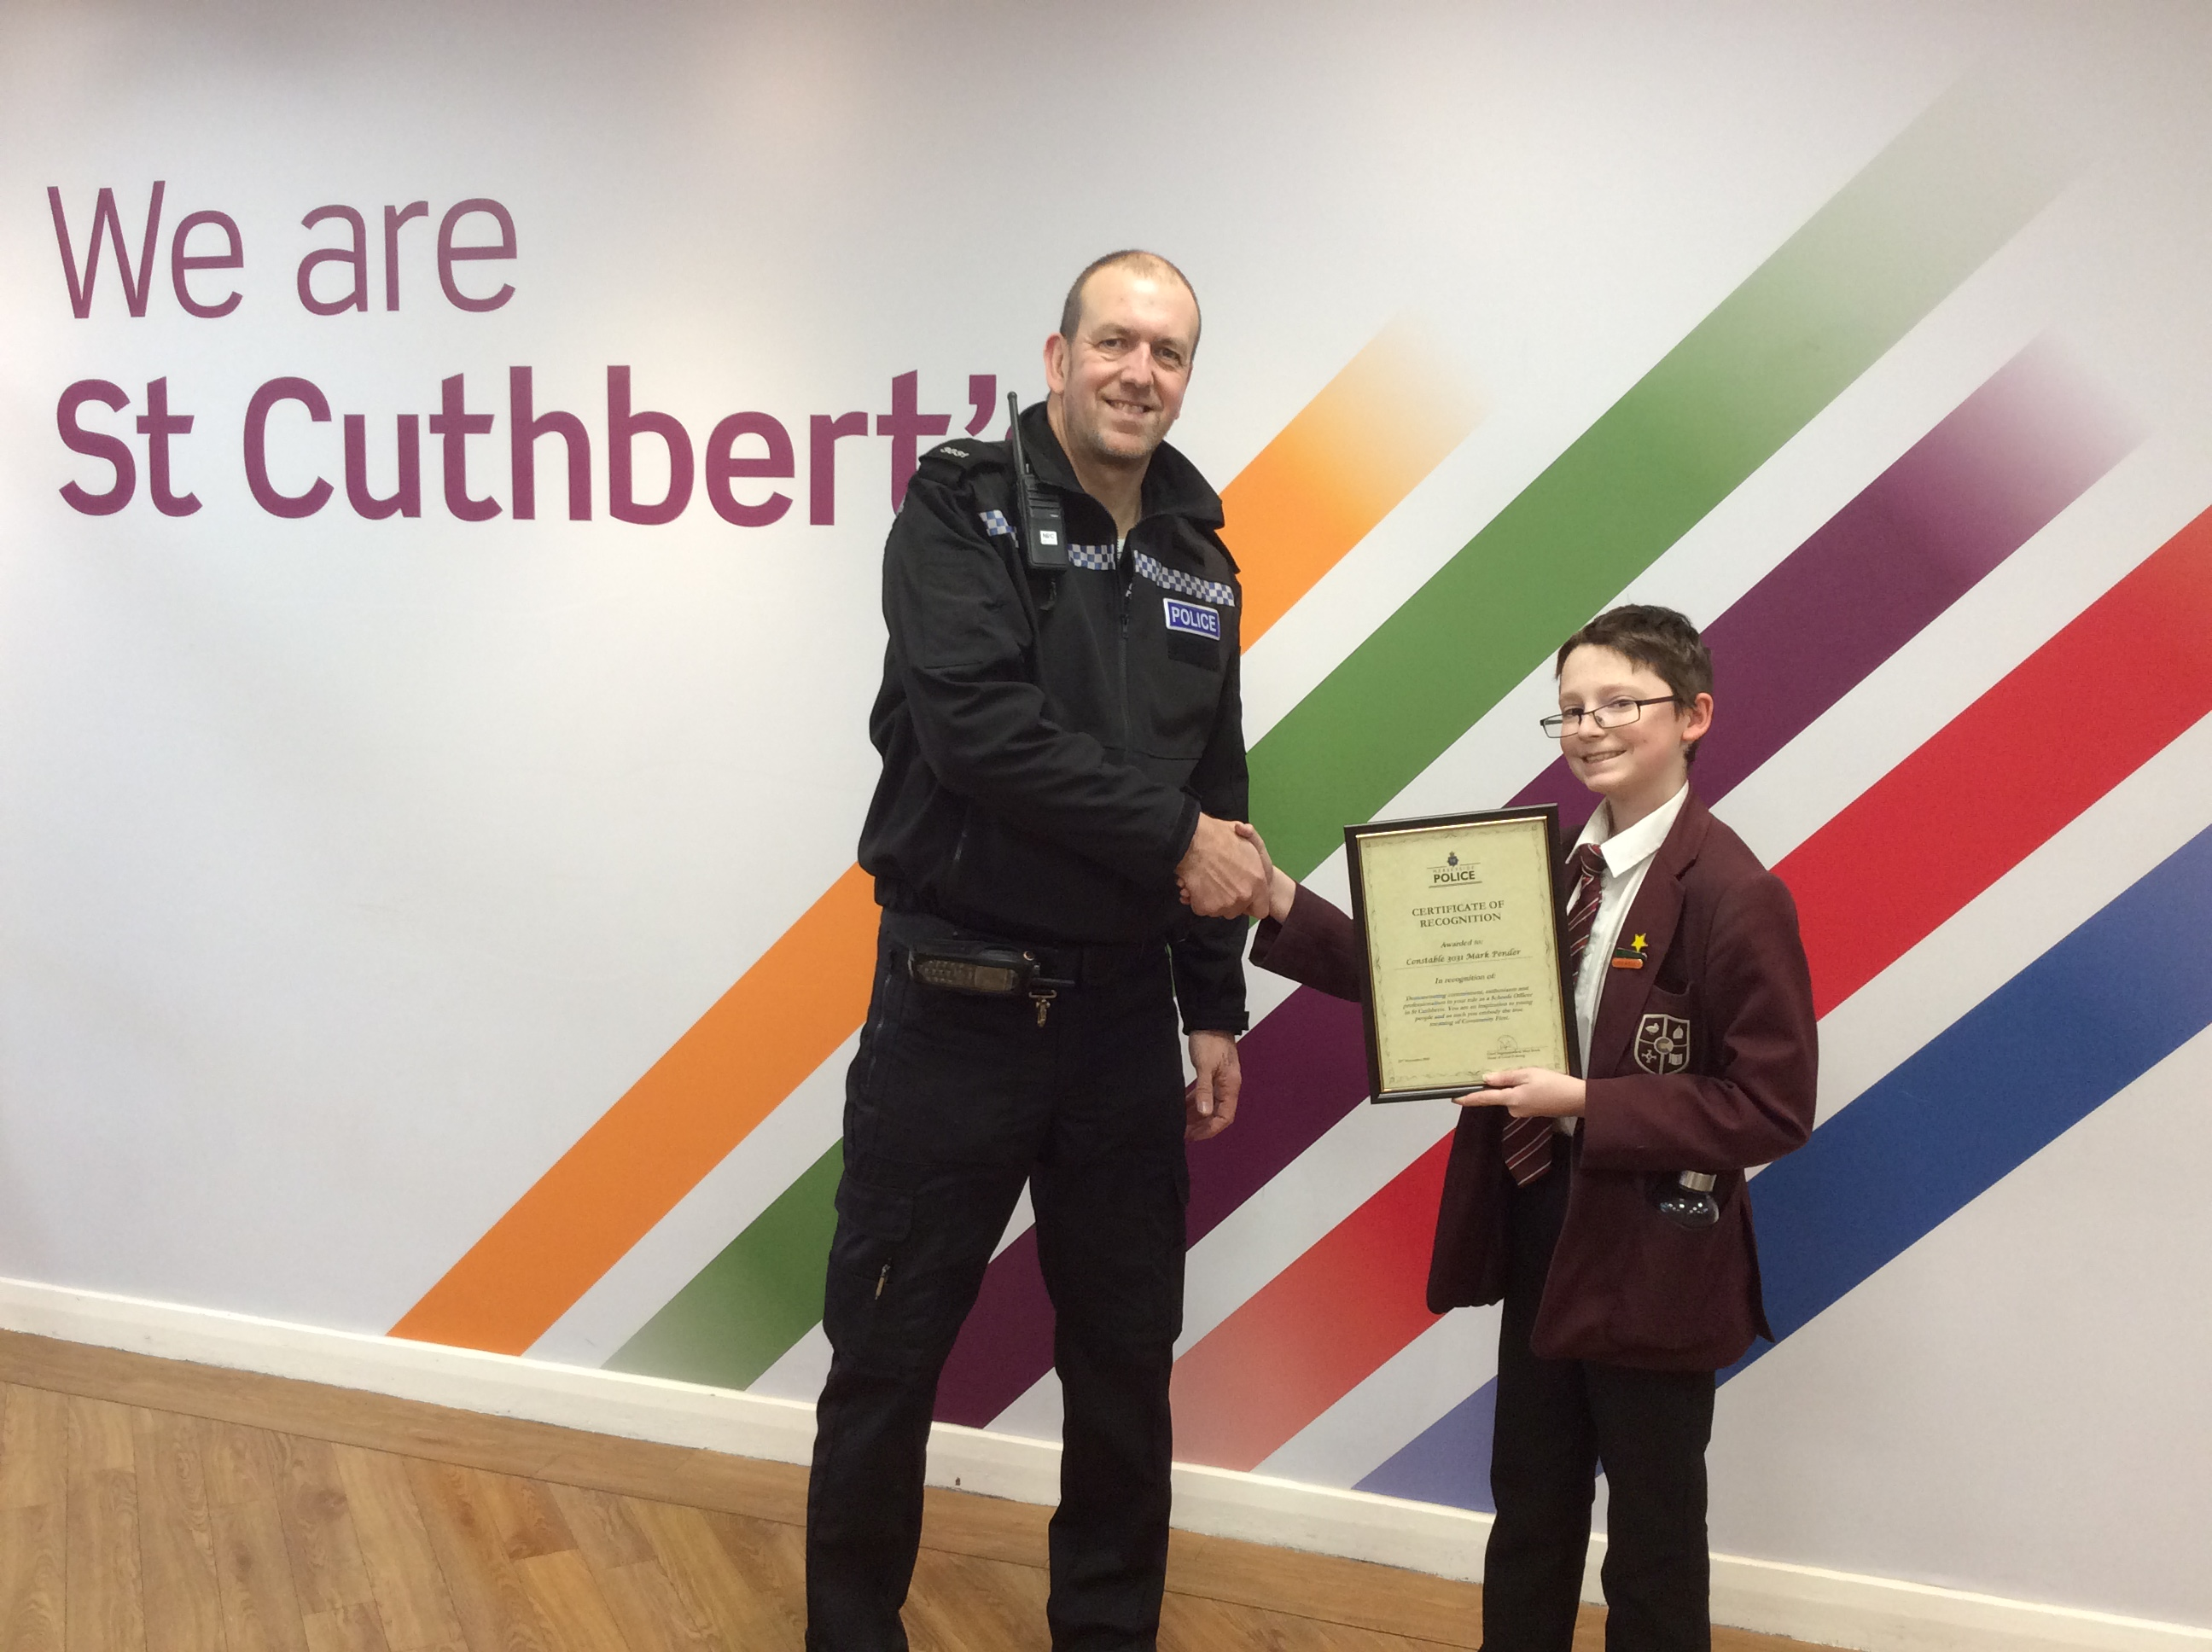 PC Pender receiving his certificate from Leon